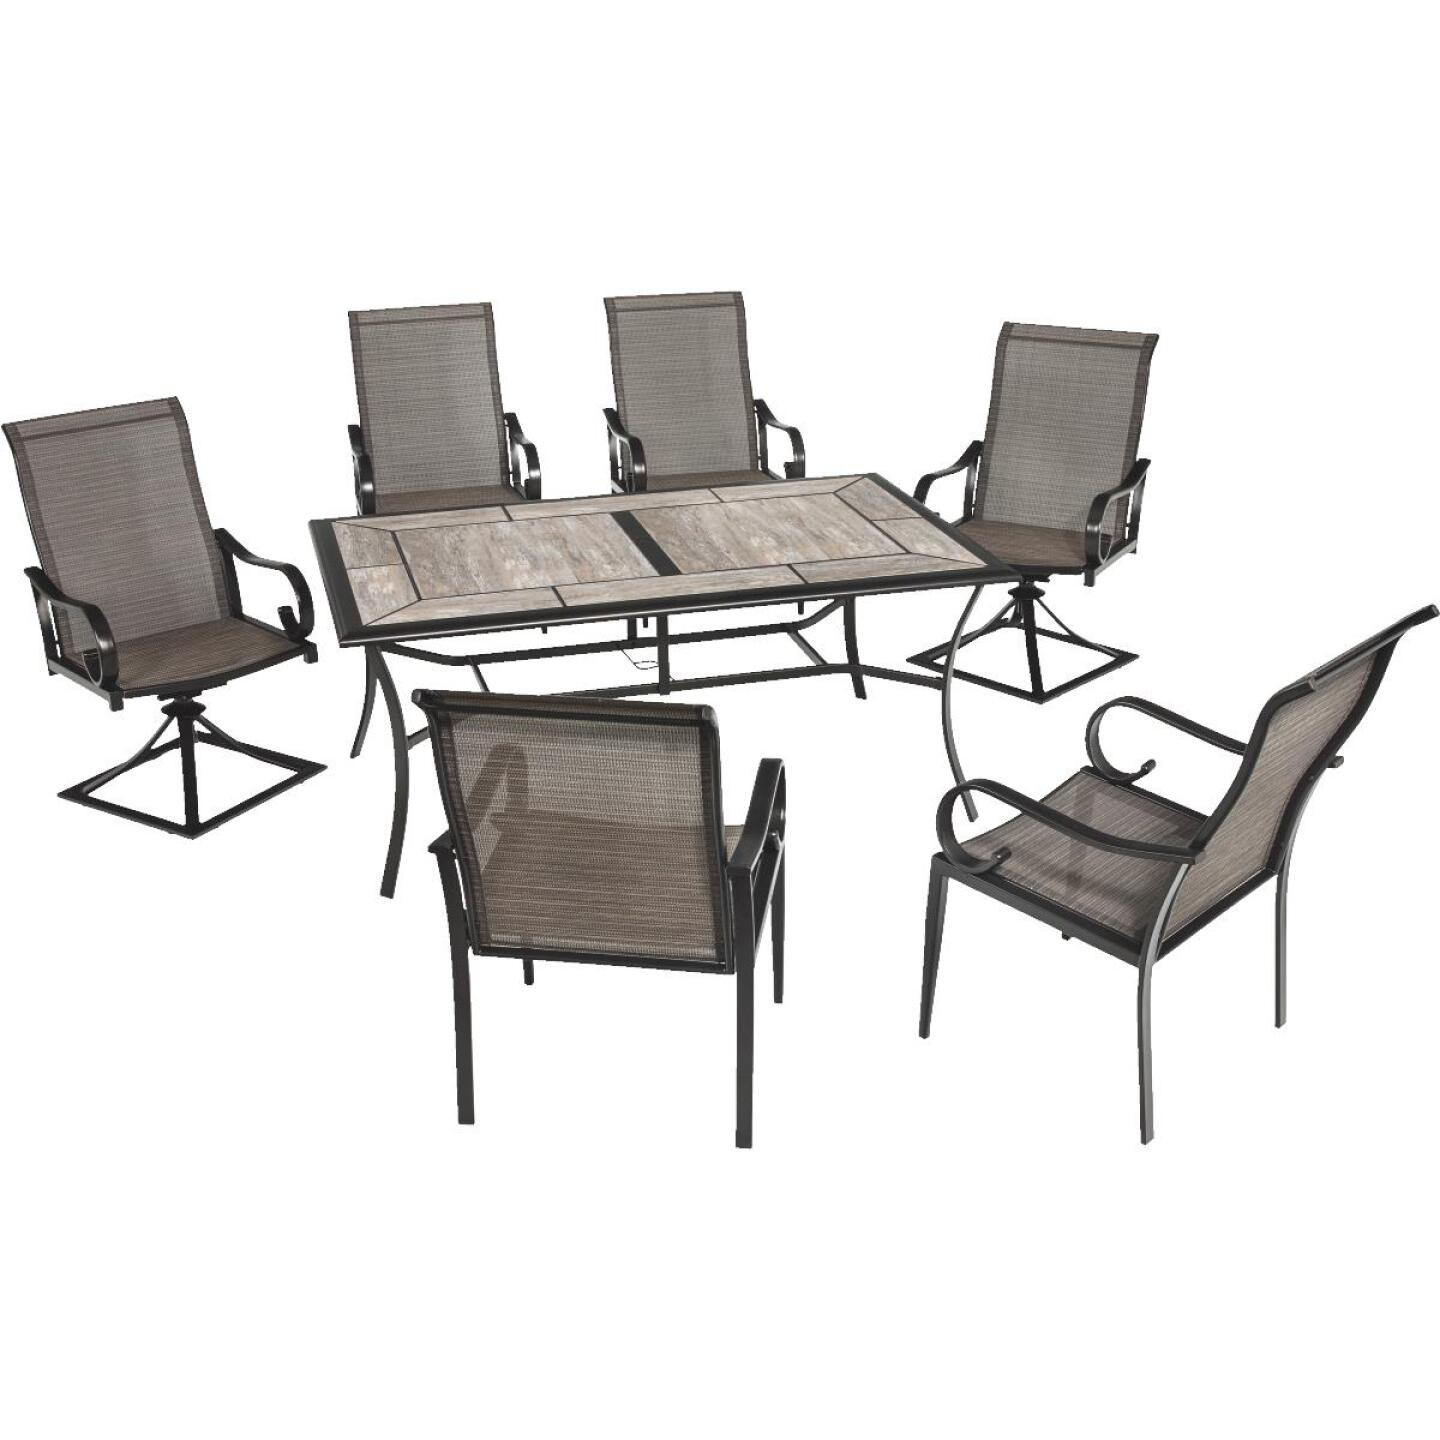 Outdoor Expressions Berkshire 7-Piece Dining Set Image 99